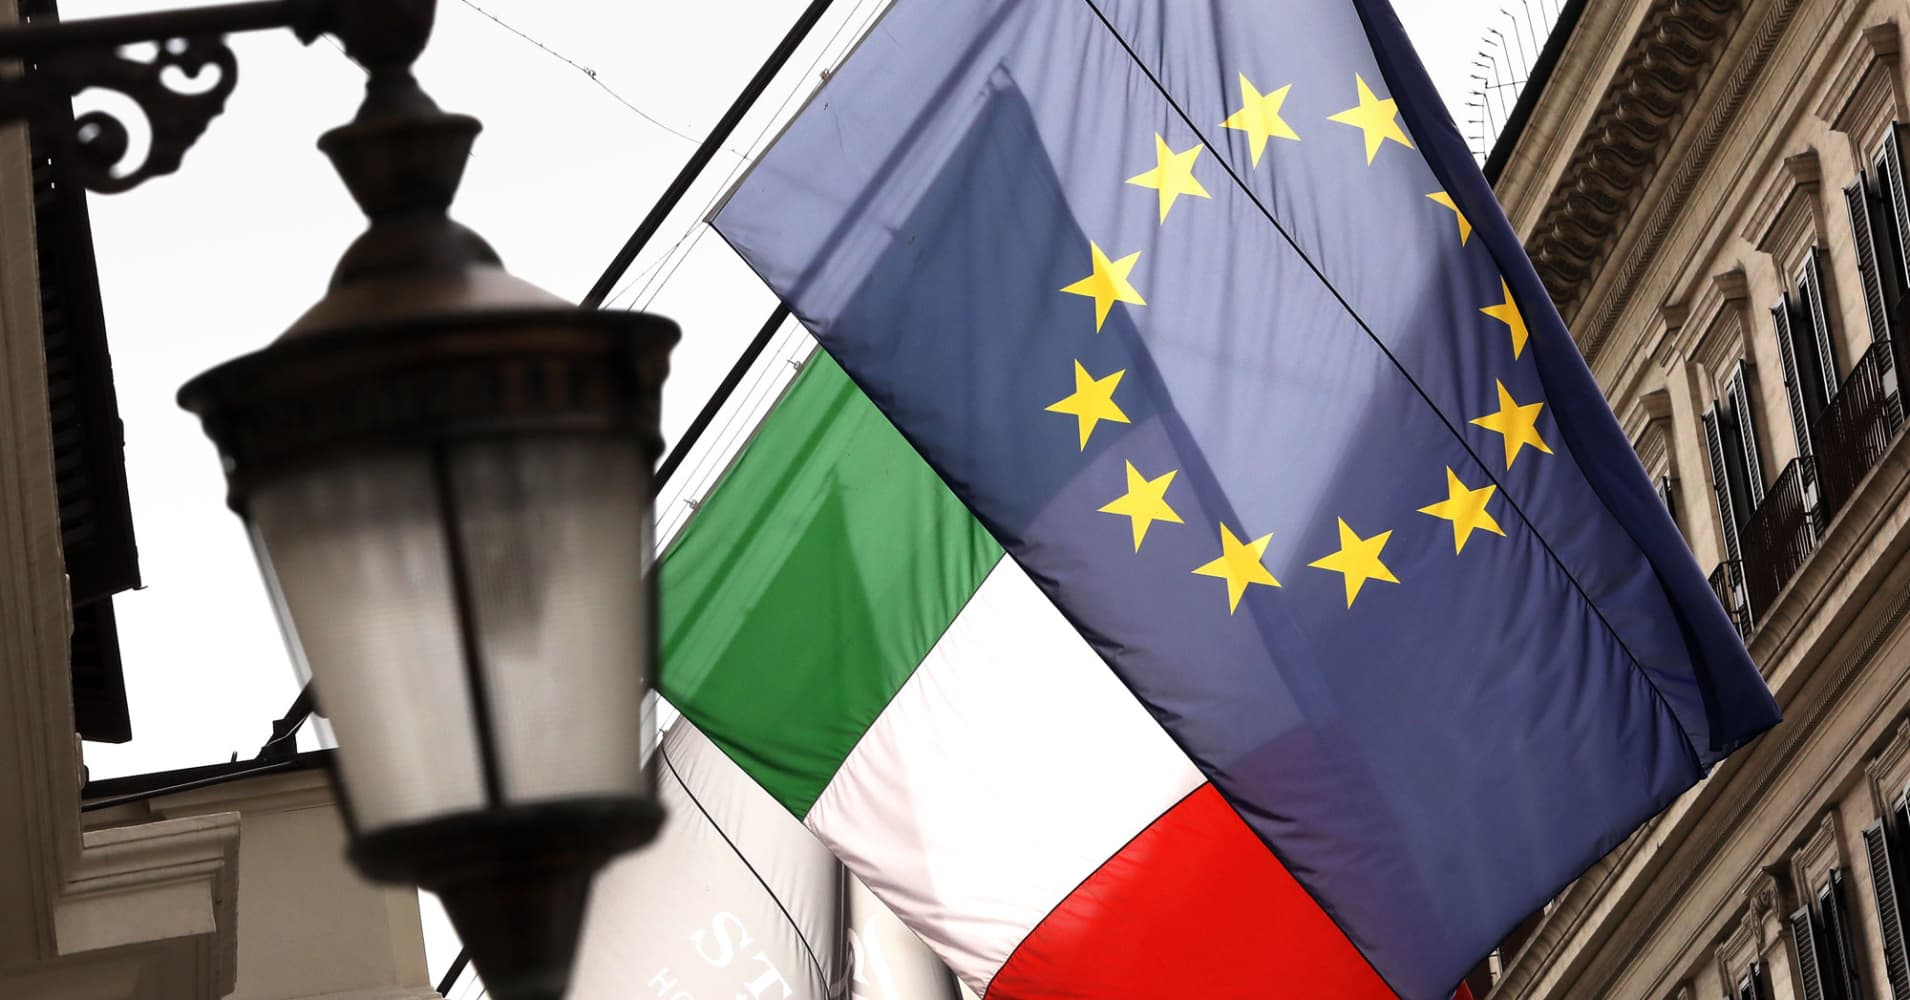 Italy has no future outside of the euro zone, top EU official warns